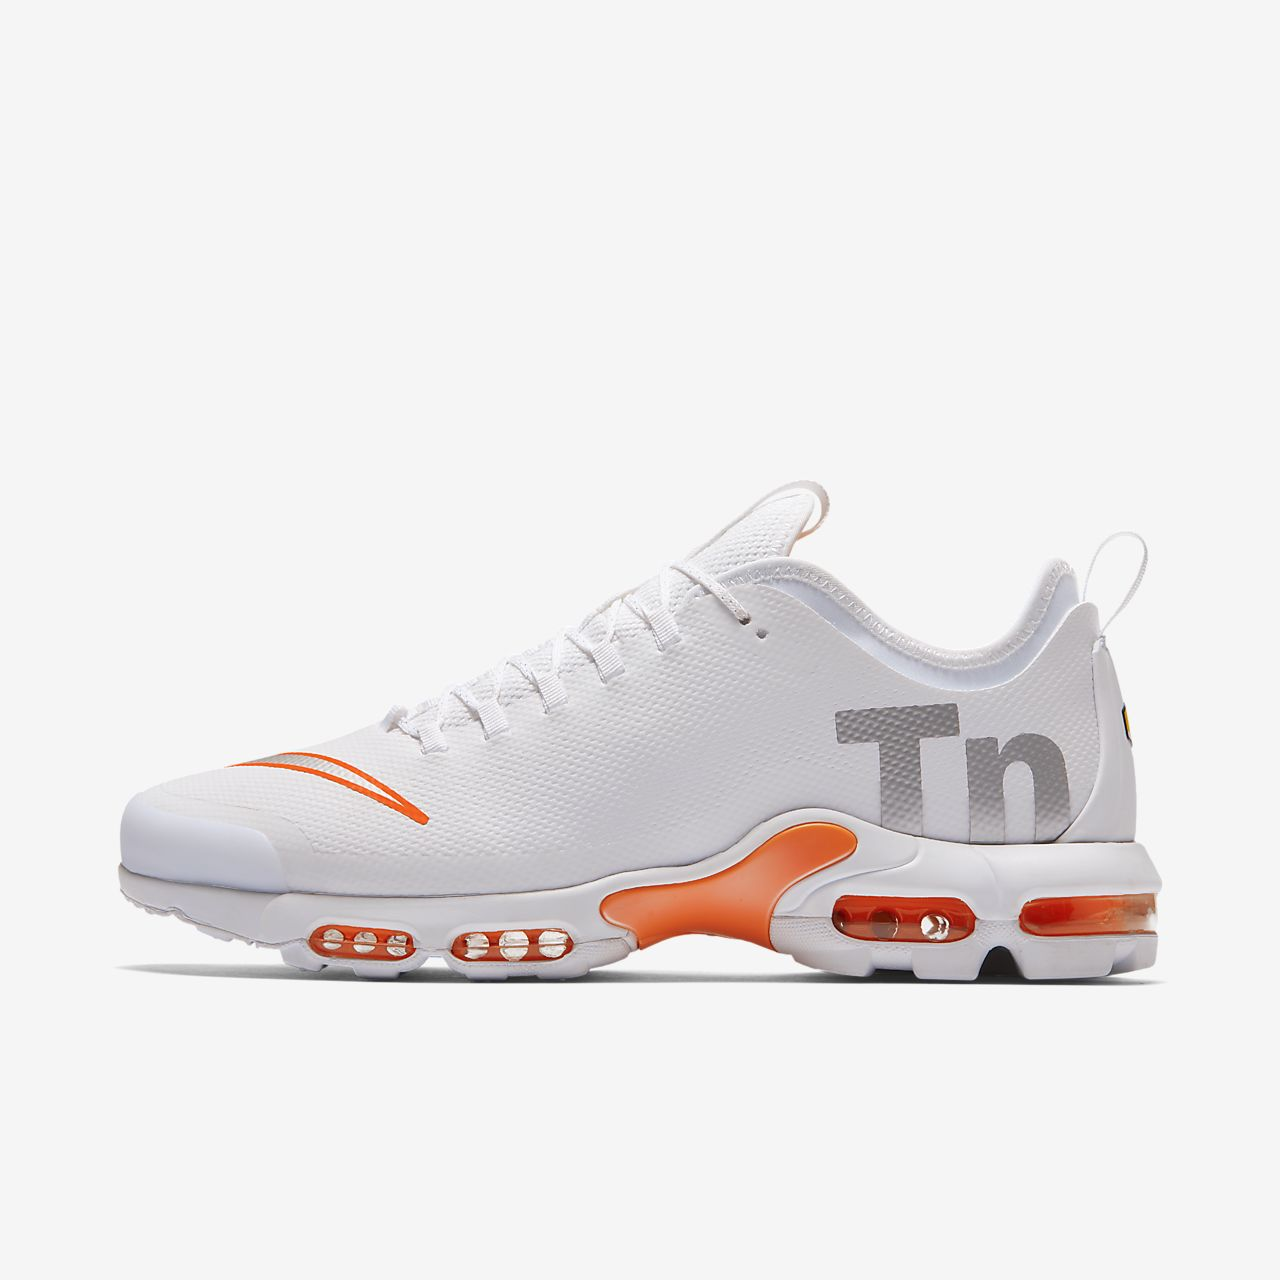 best website 207f9 77382 ... canada nike air max plus tn ultra se mens shoe 8558c e4954 ...